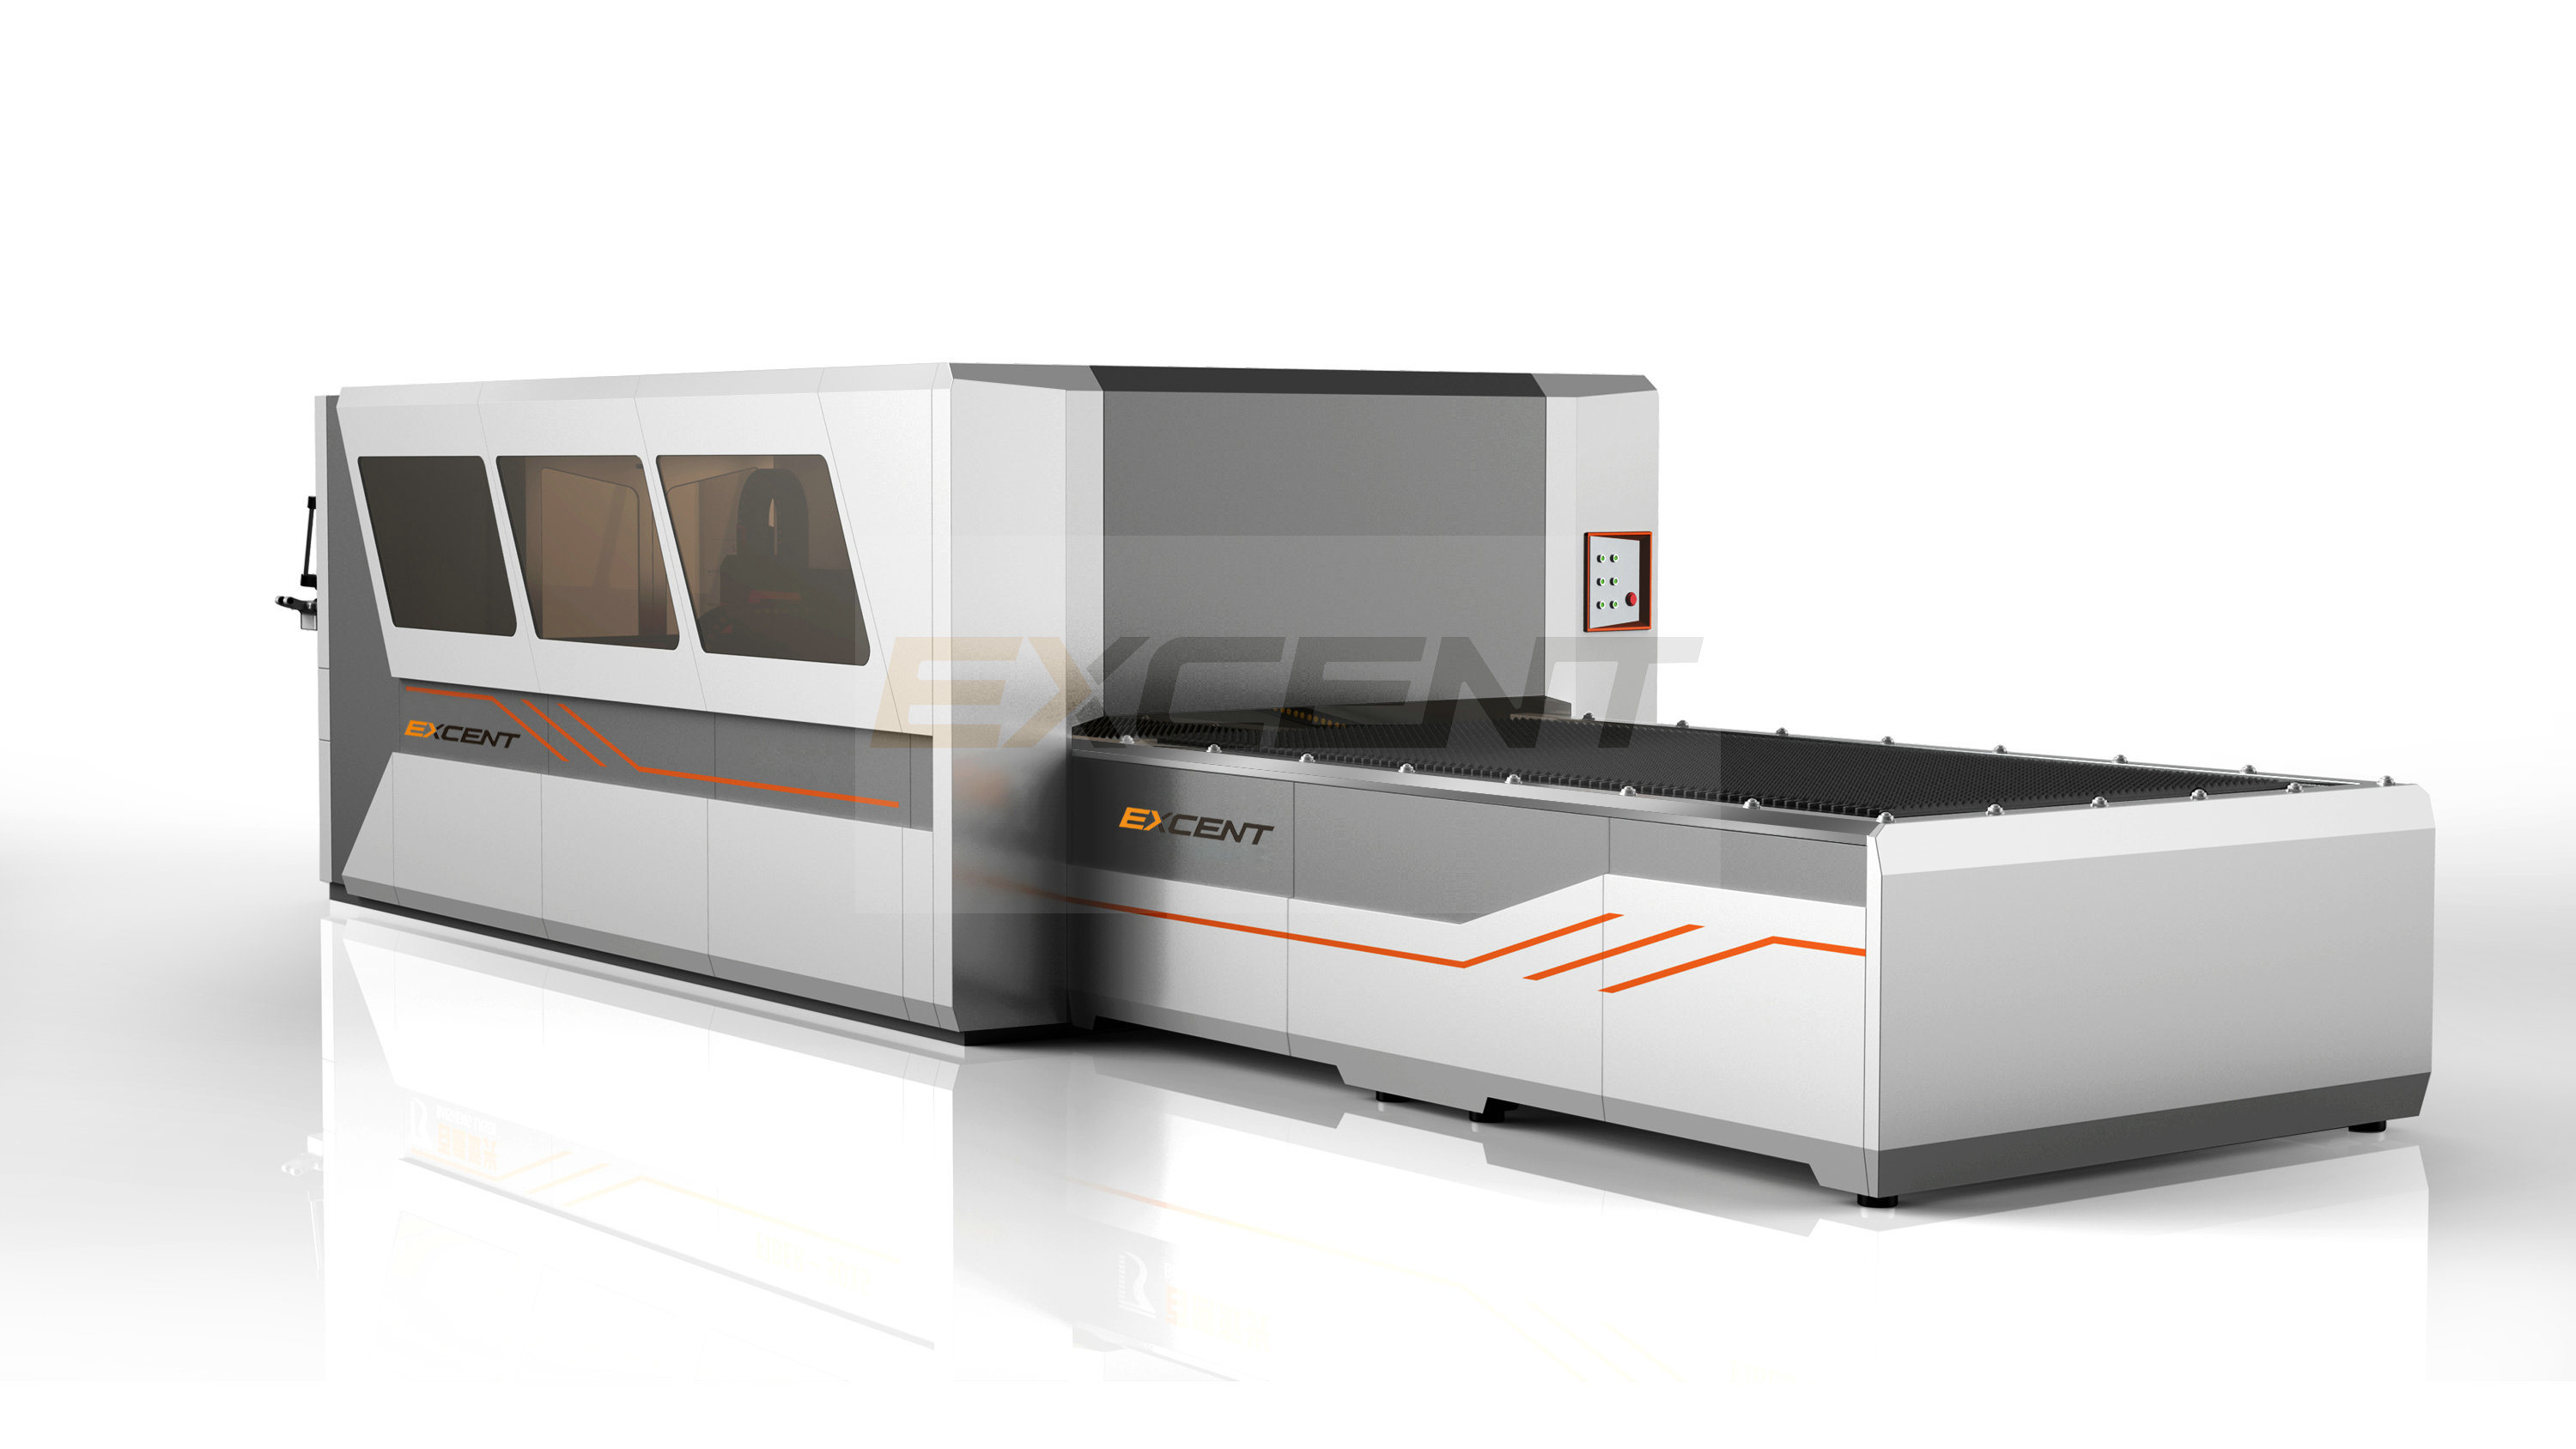 Fiber Laser Graving and Cutting M